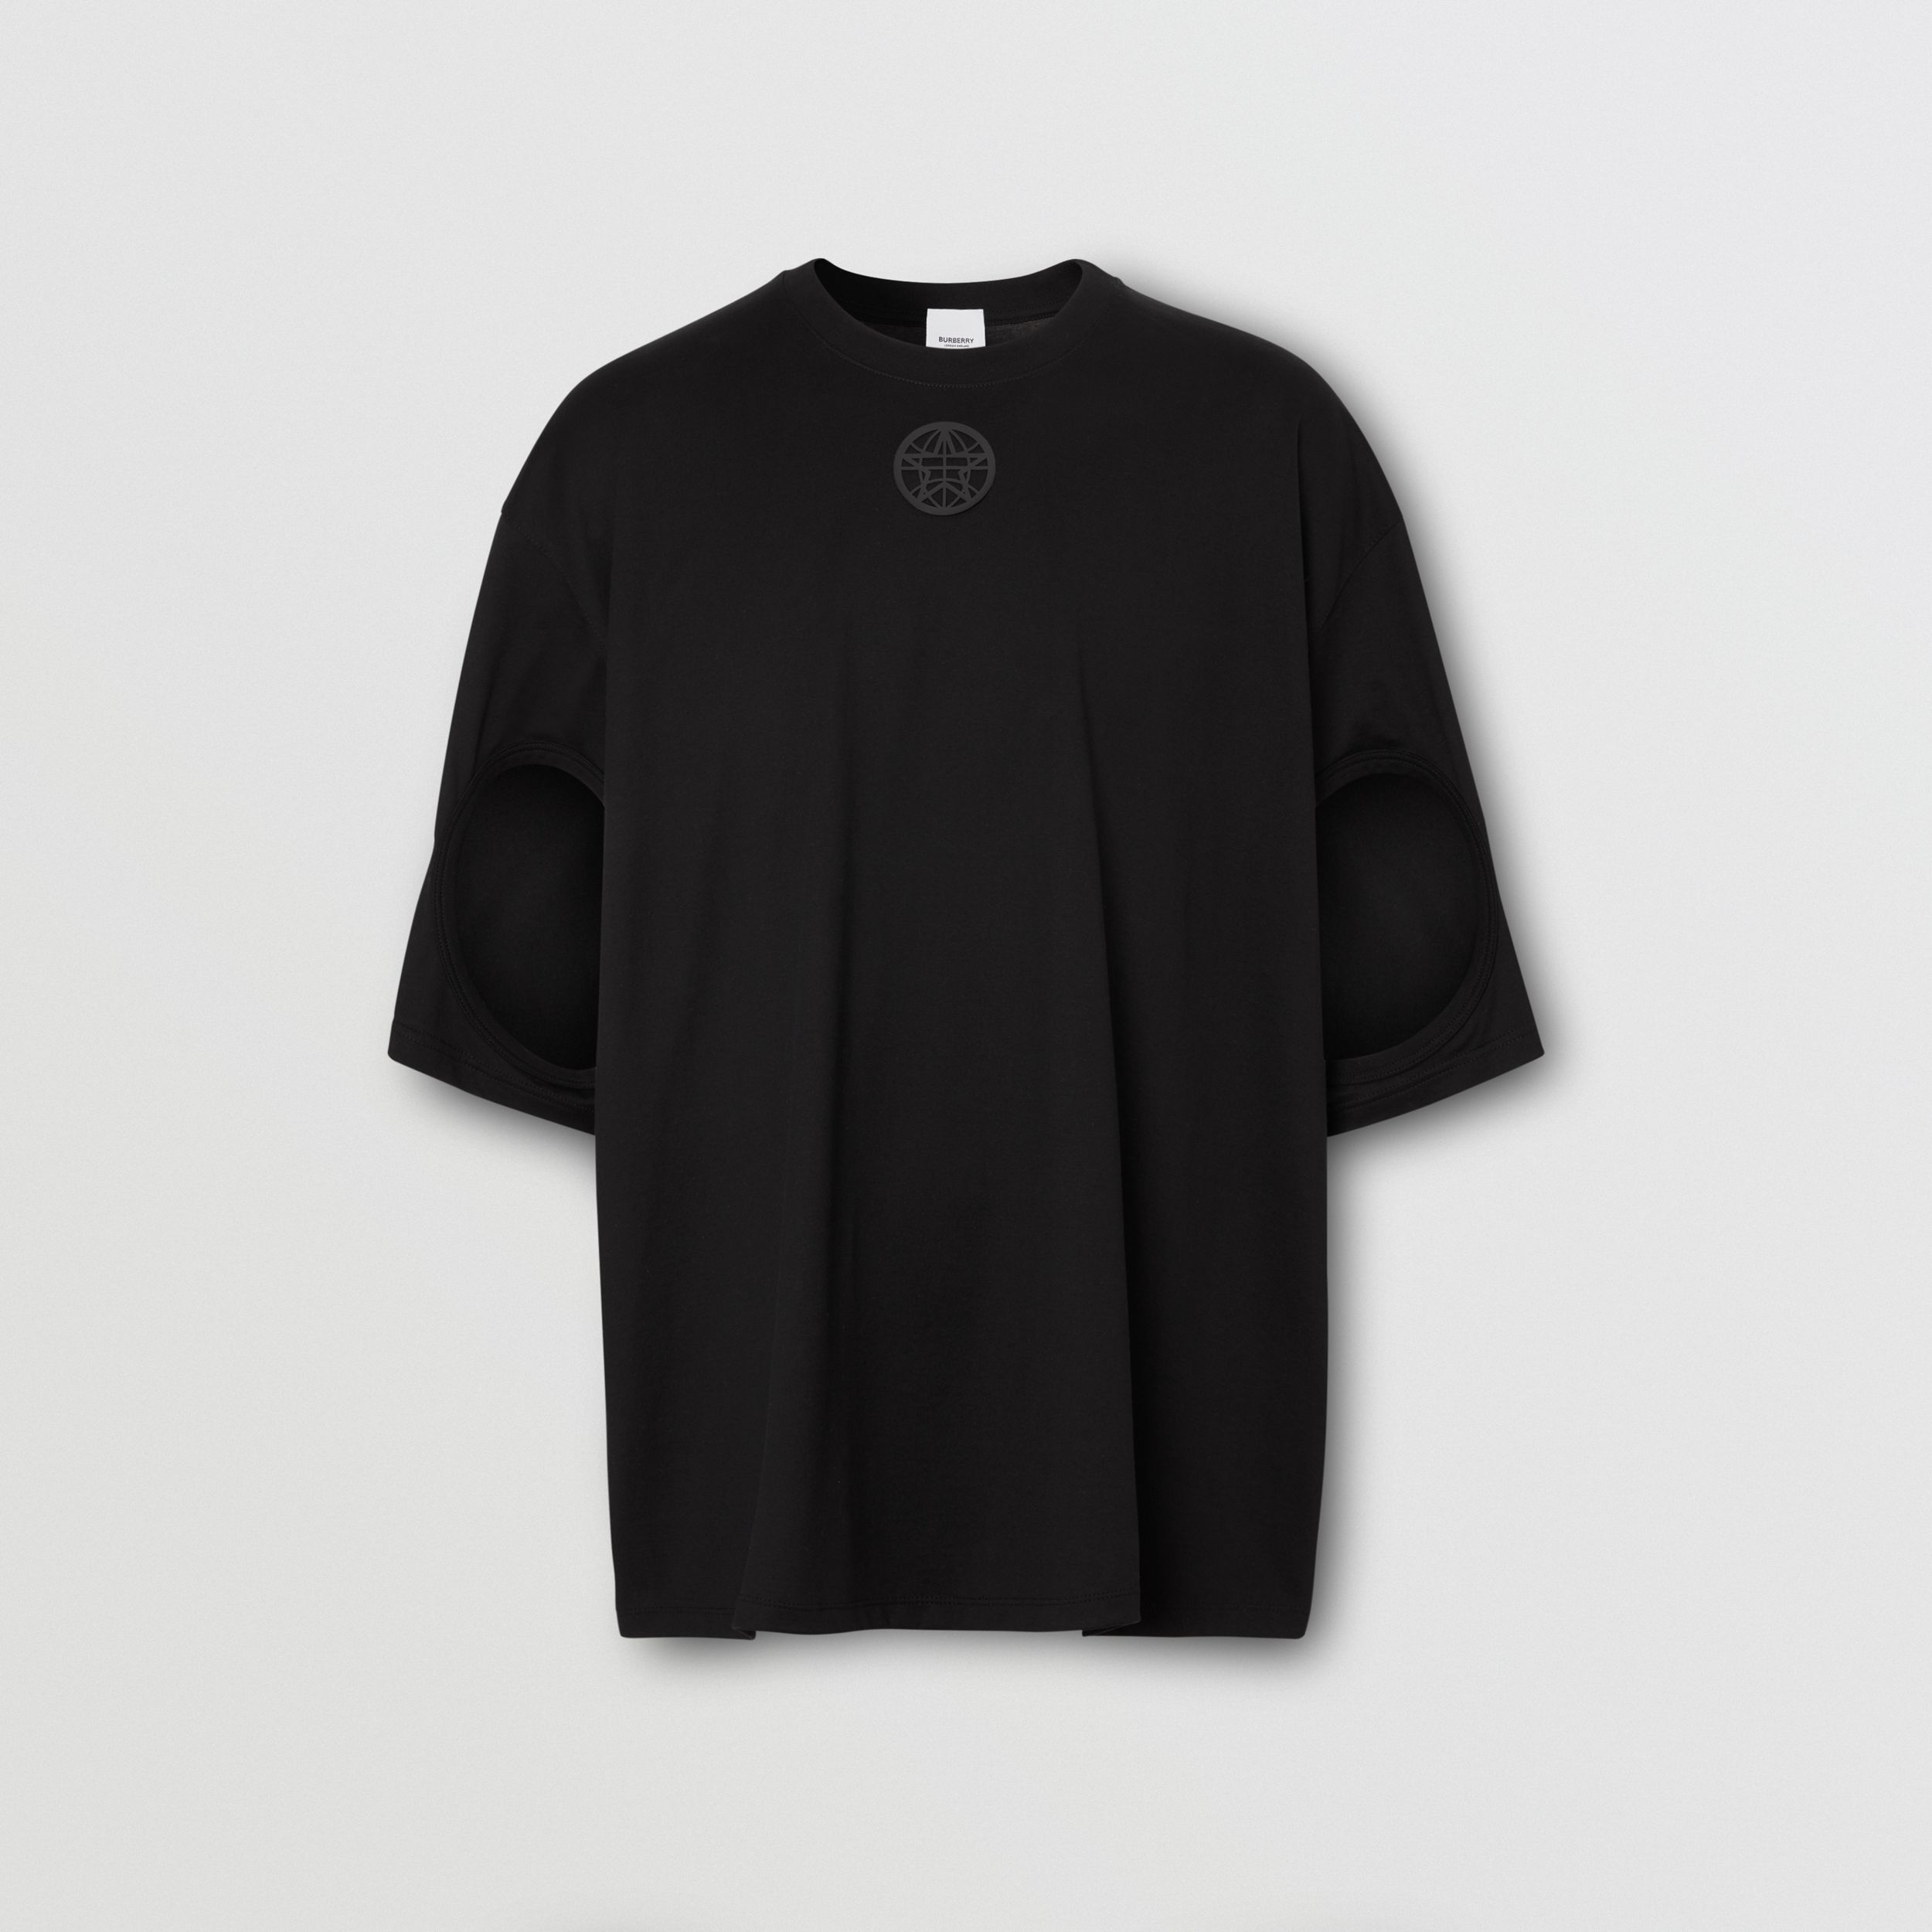 Cut-out Sleeve Montage Print Cotton Oversized T-shirt in Black - Men | Burberry - 3